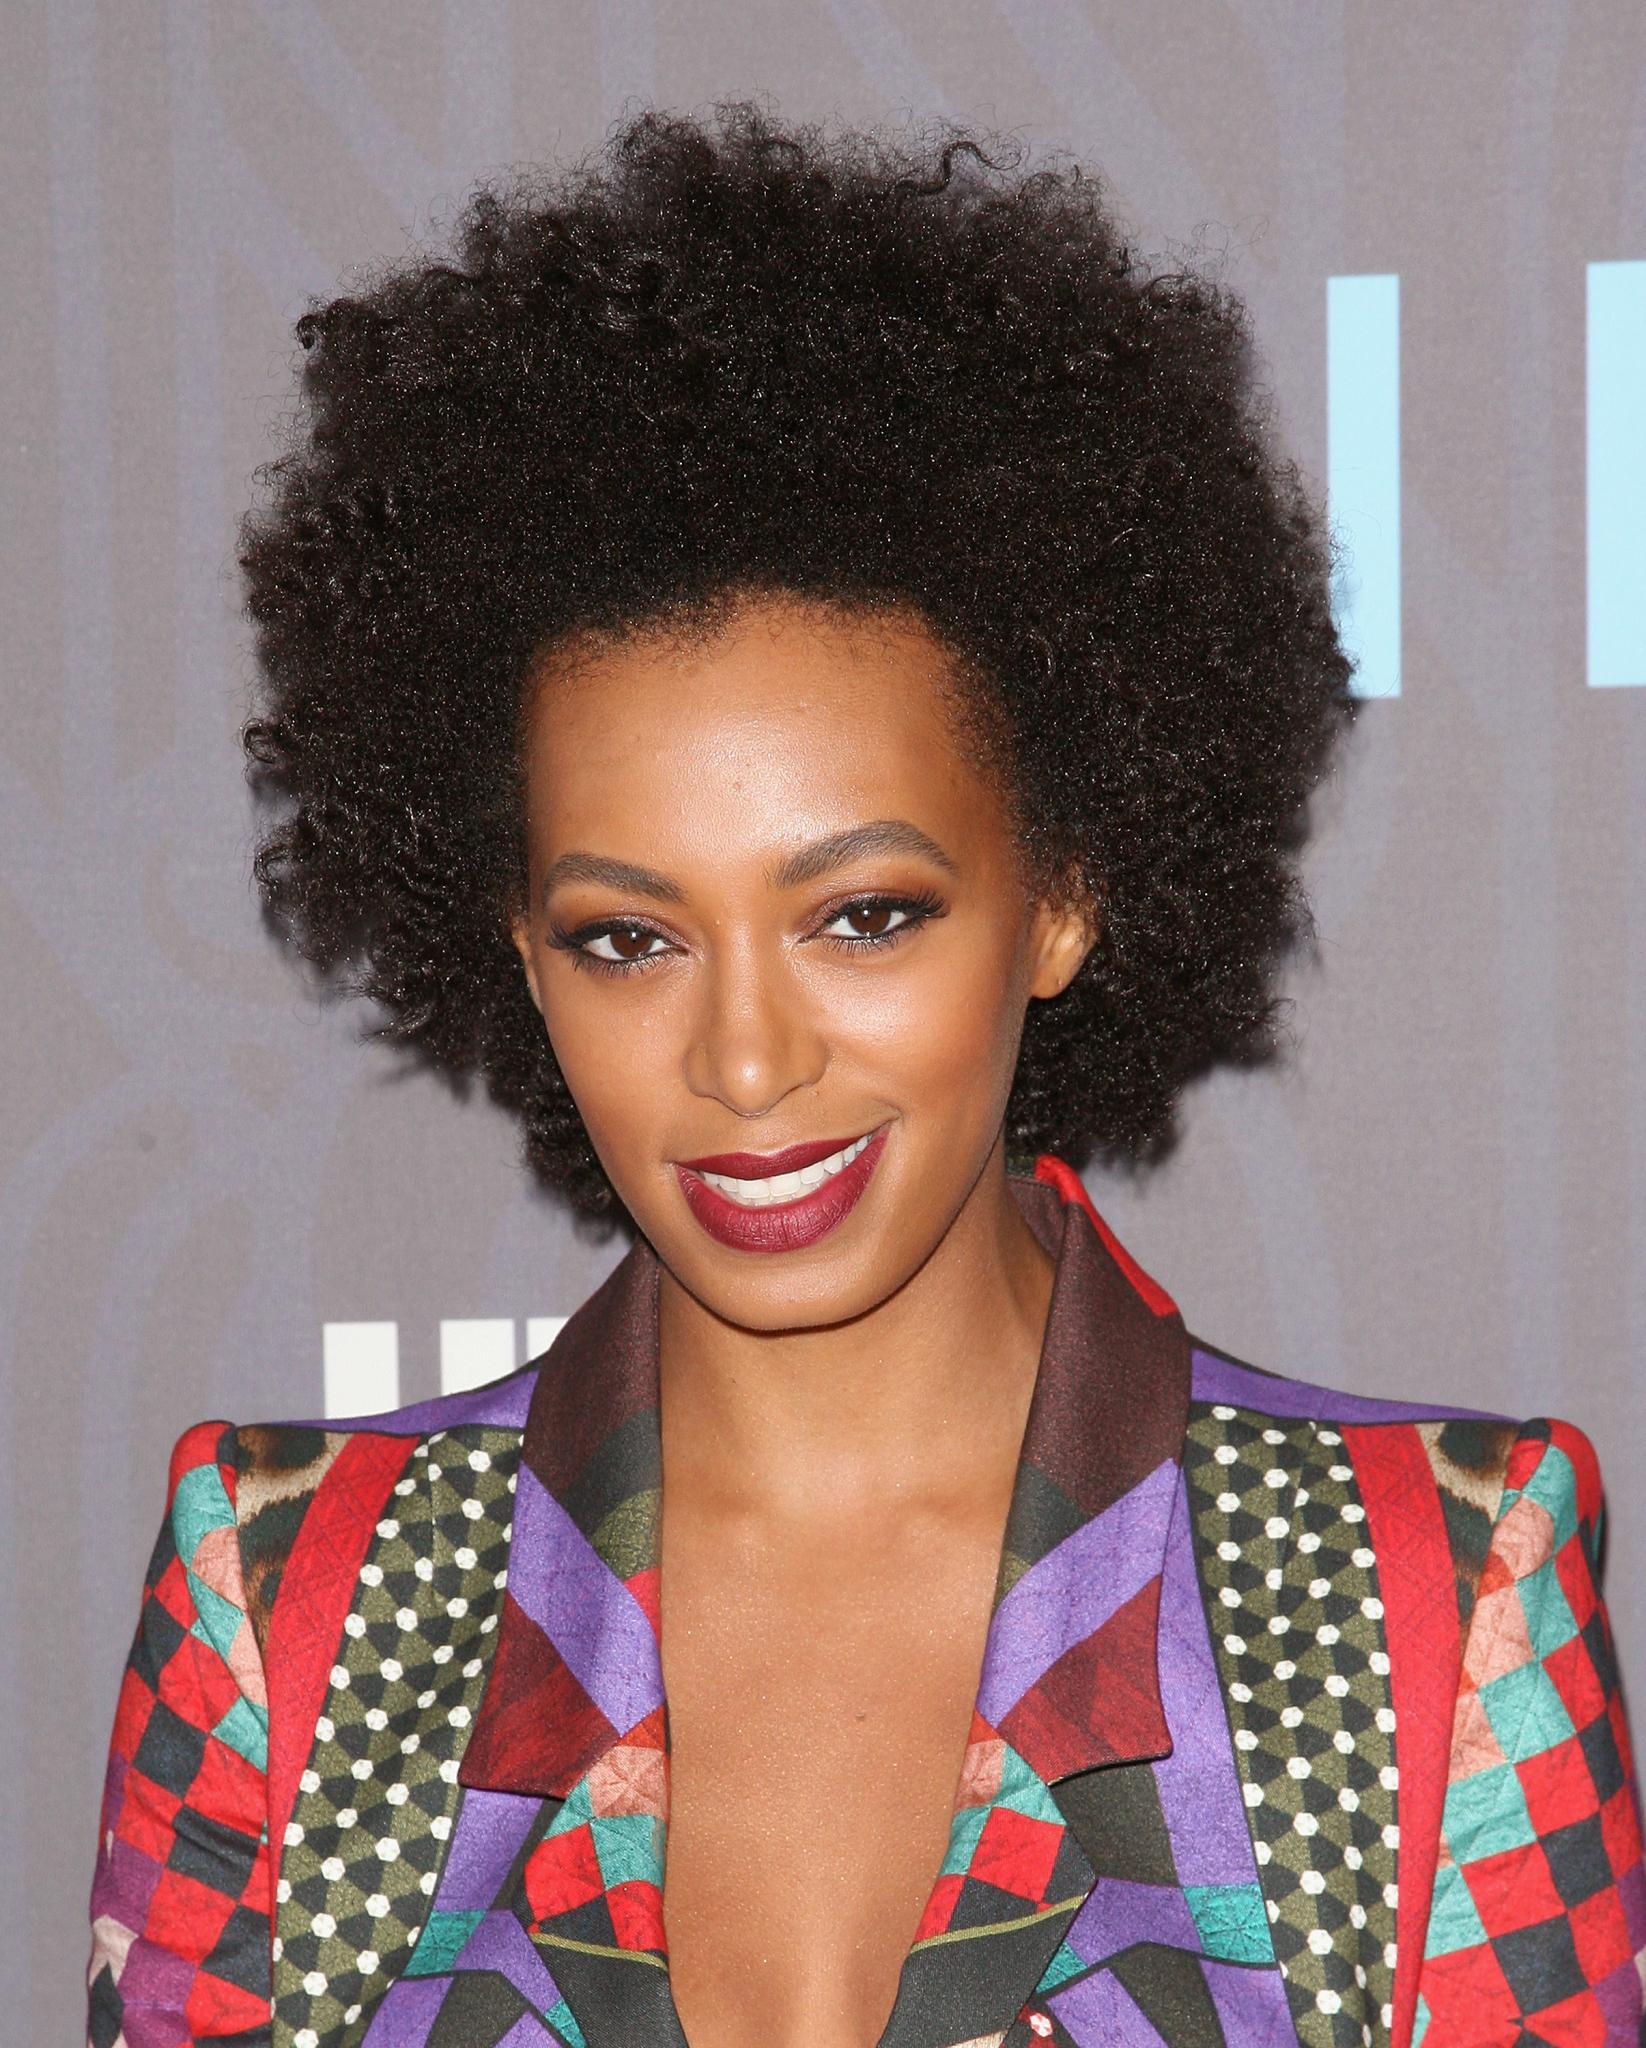 3 Beauty Dares To Try, Courtesy of Solange